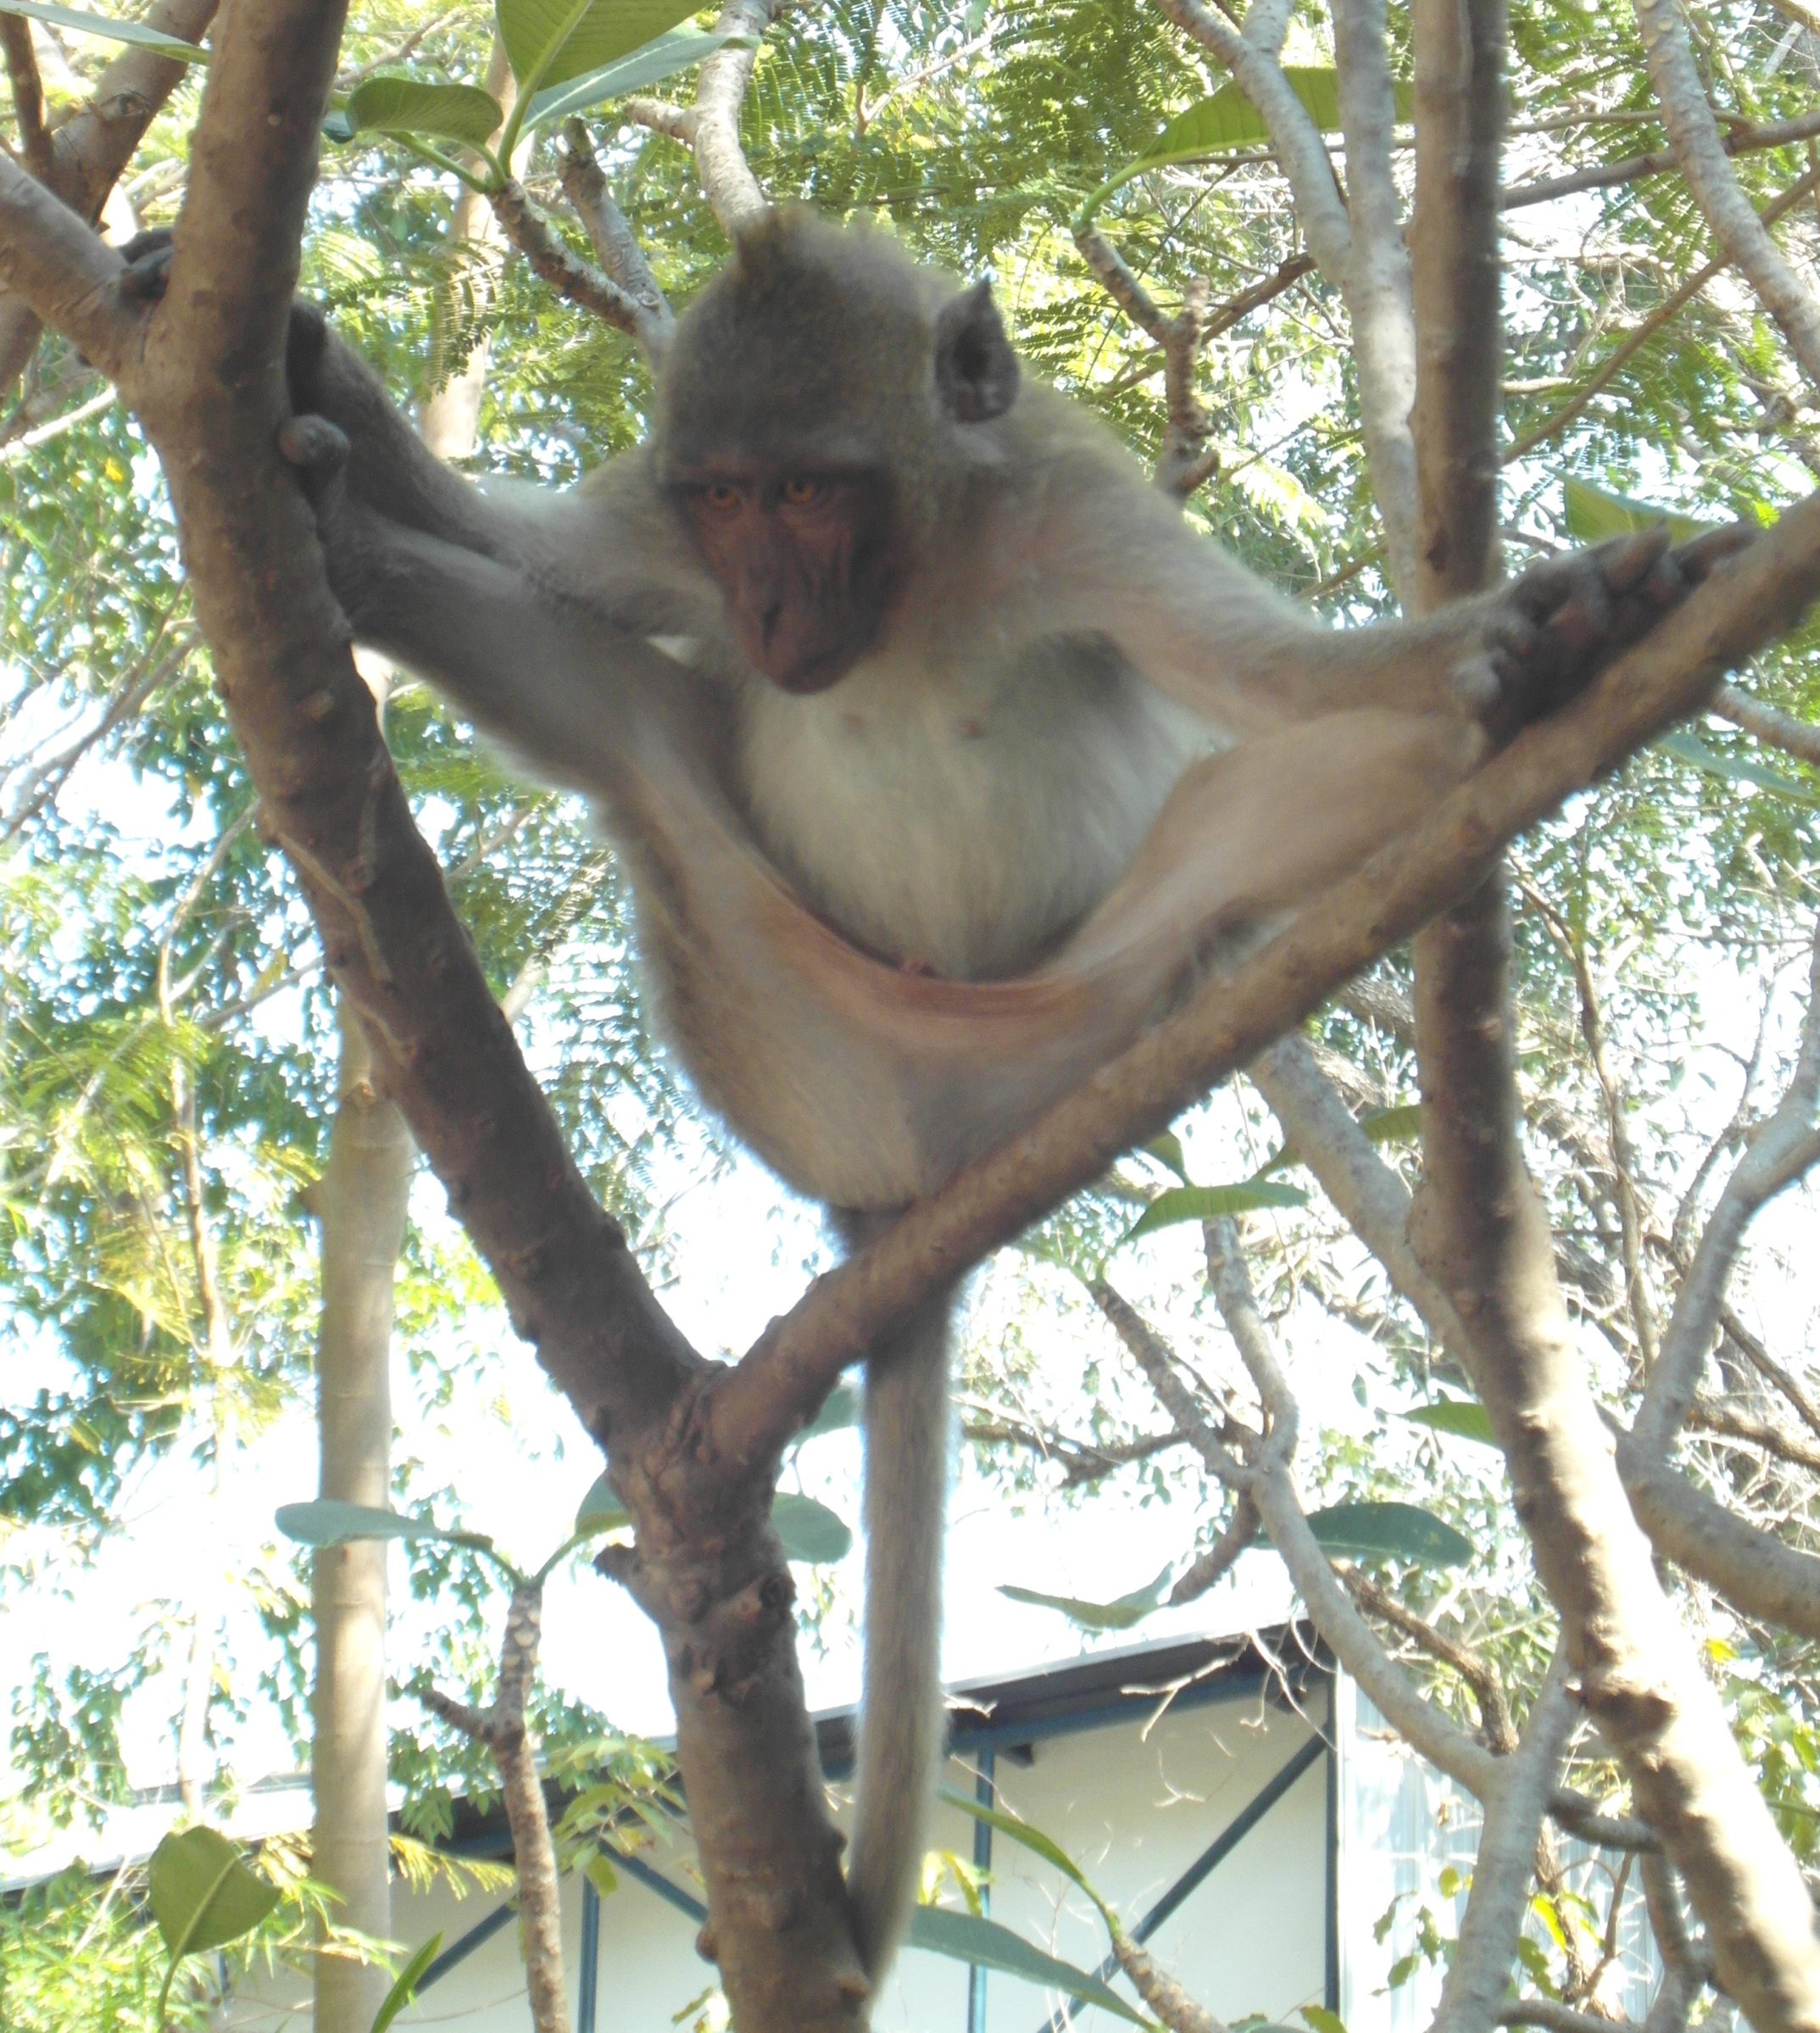 Monkey doing the splits, Asia, Asian, Branch, Doing, HQ Photo